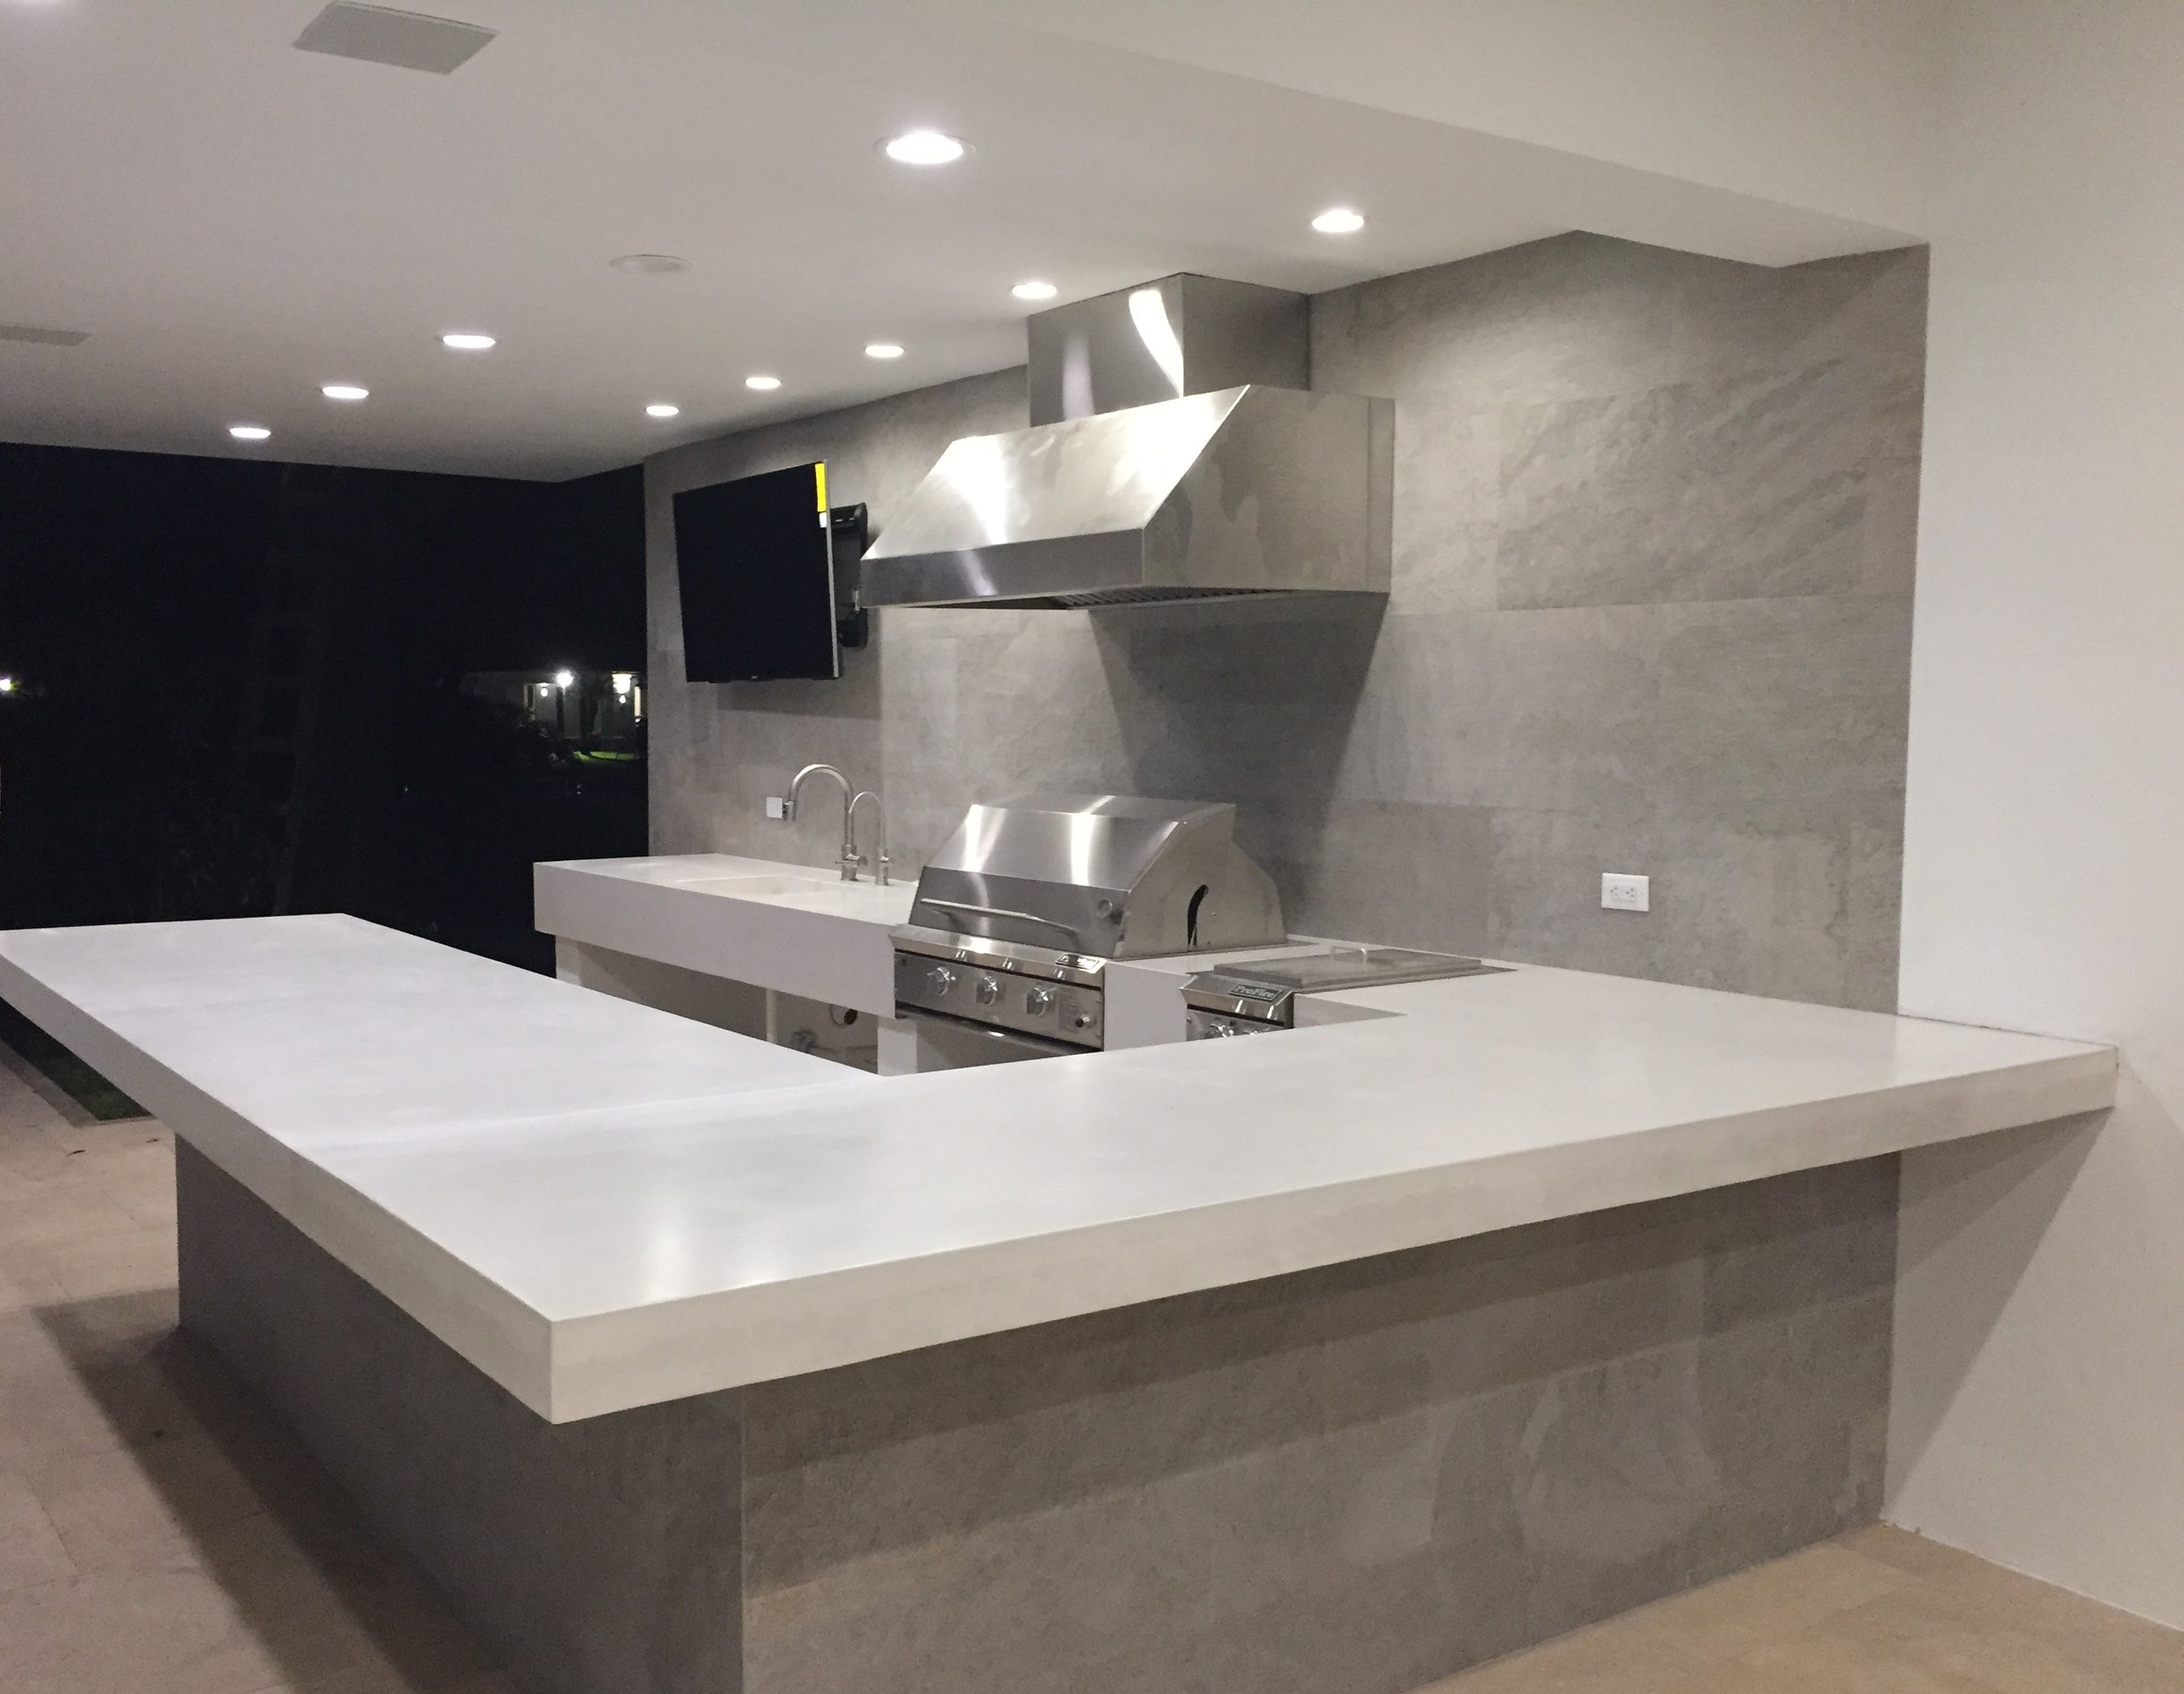 Concrete Countertops Pricing Concrete Sinks Countertops And Furniture By Stogs Concrete